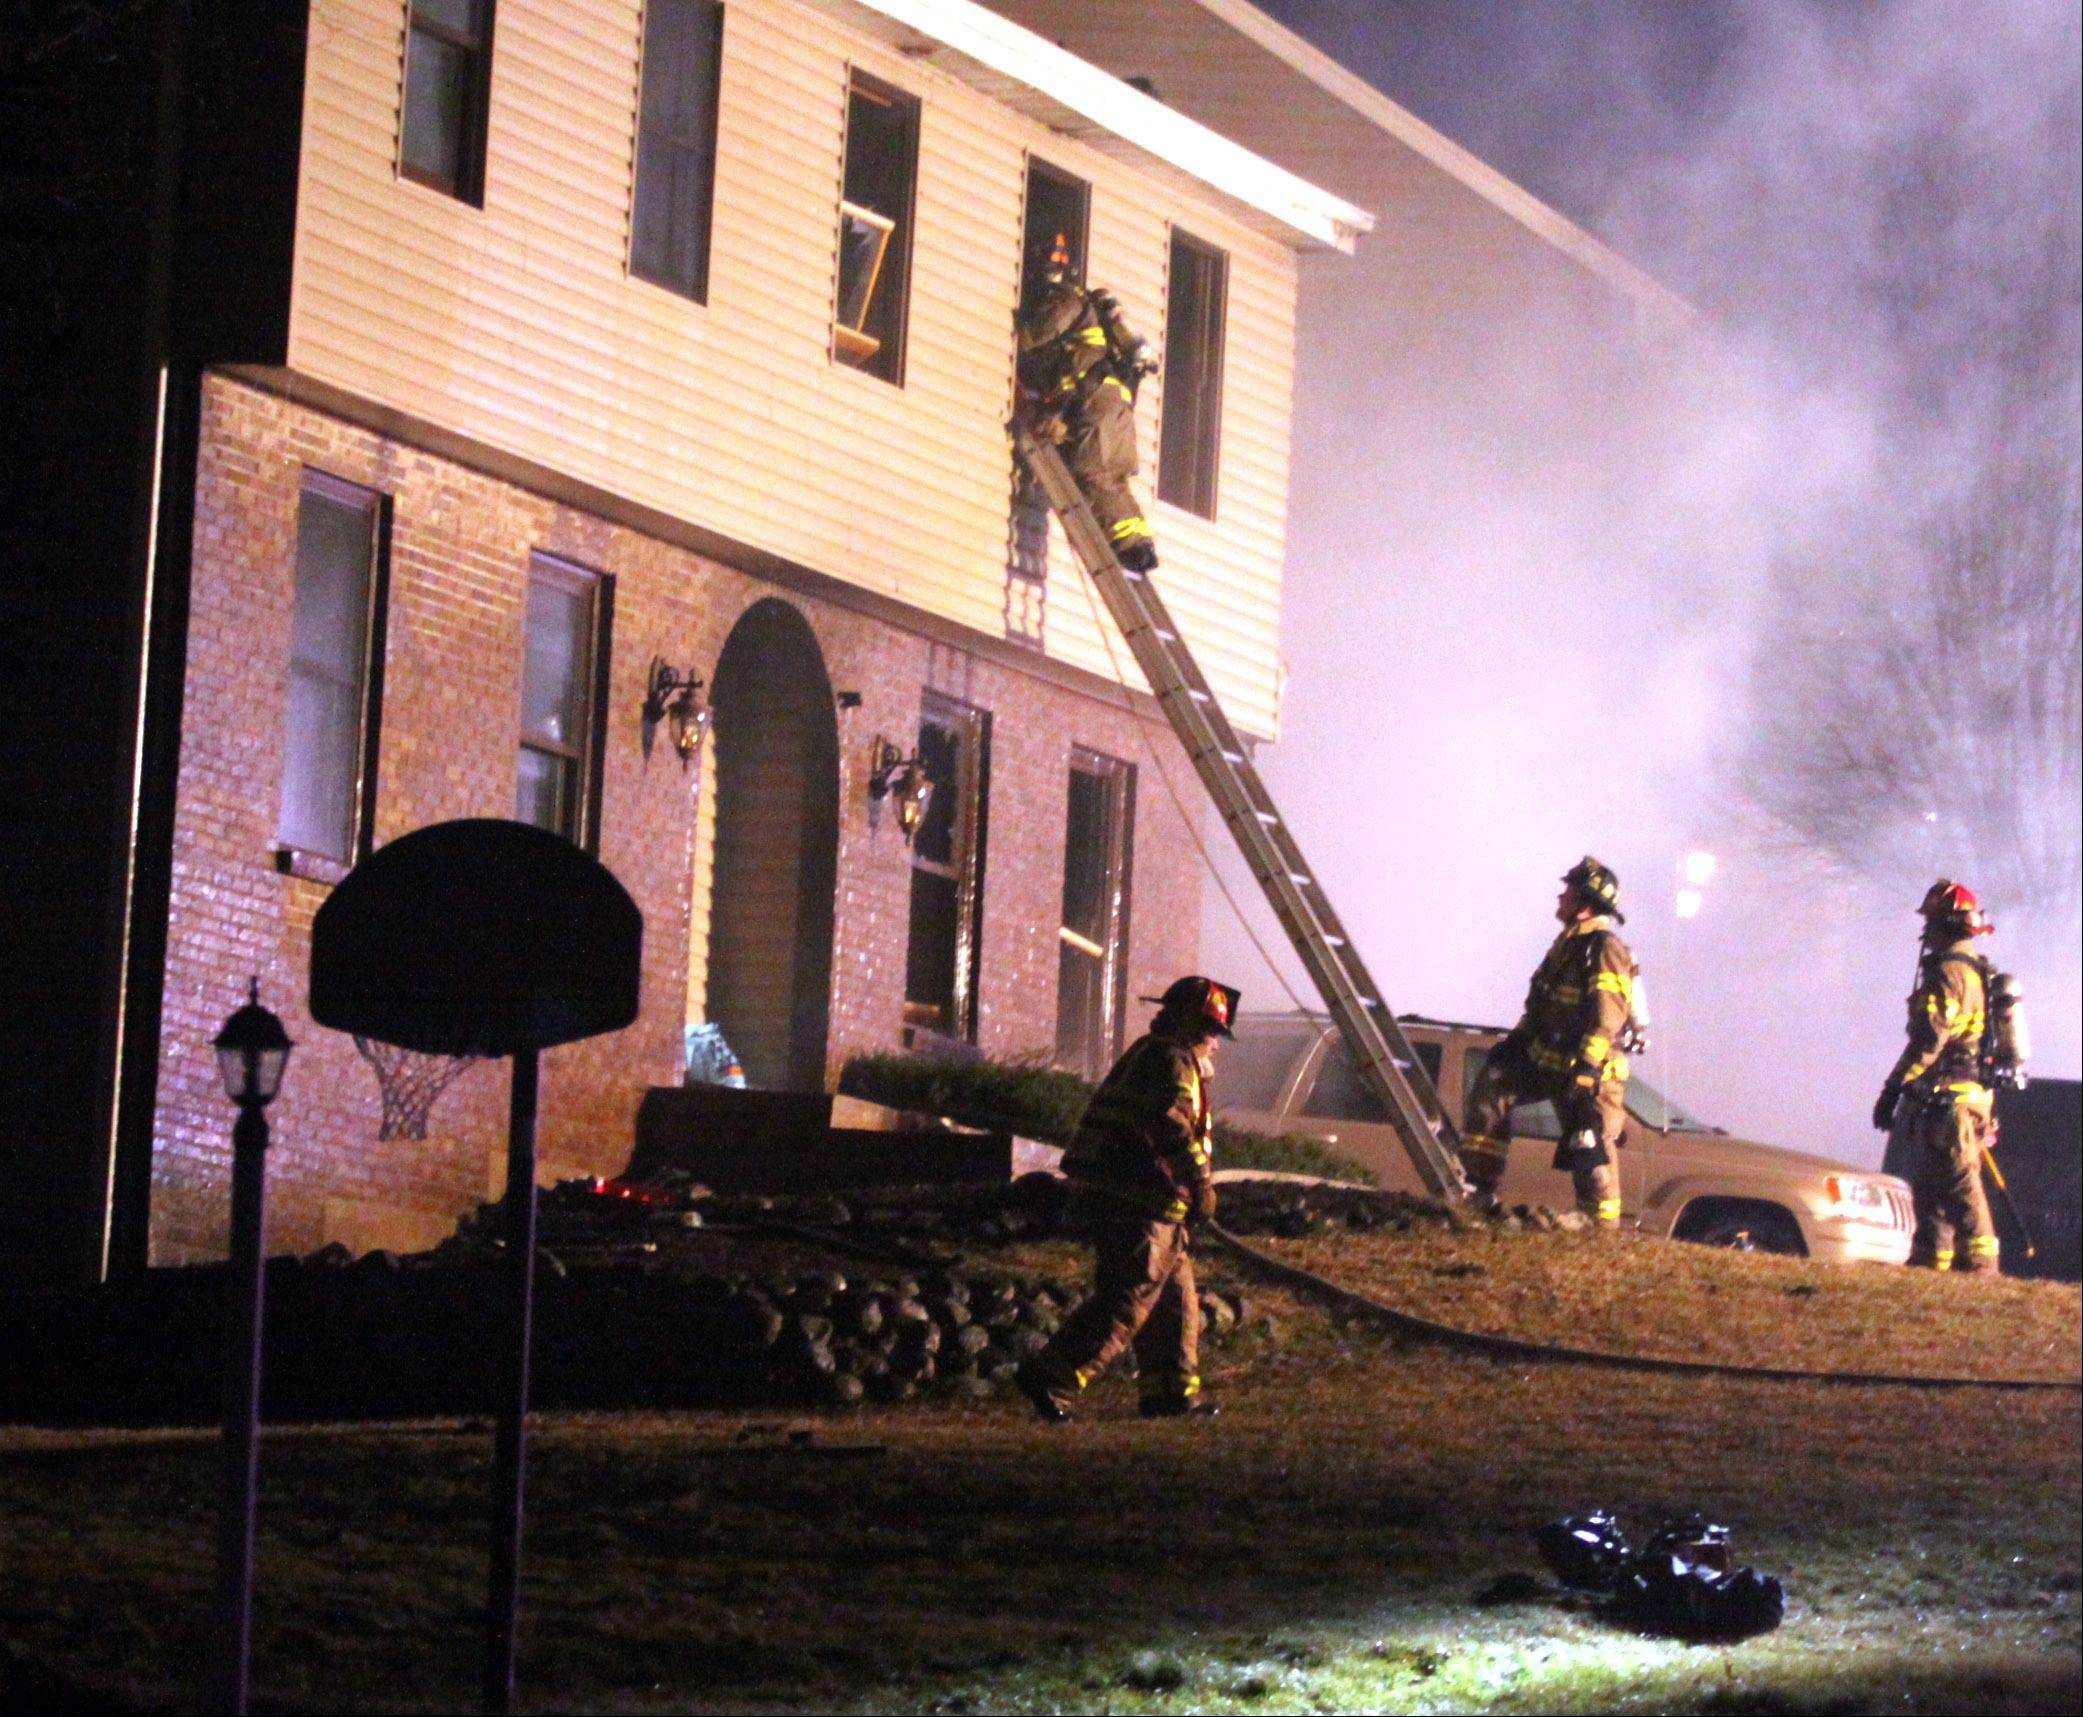 Personnel work at the scene of a fire on the 1100 block of Spring Hill Drive in Algonquin Monday night.